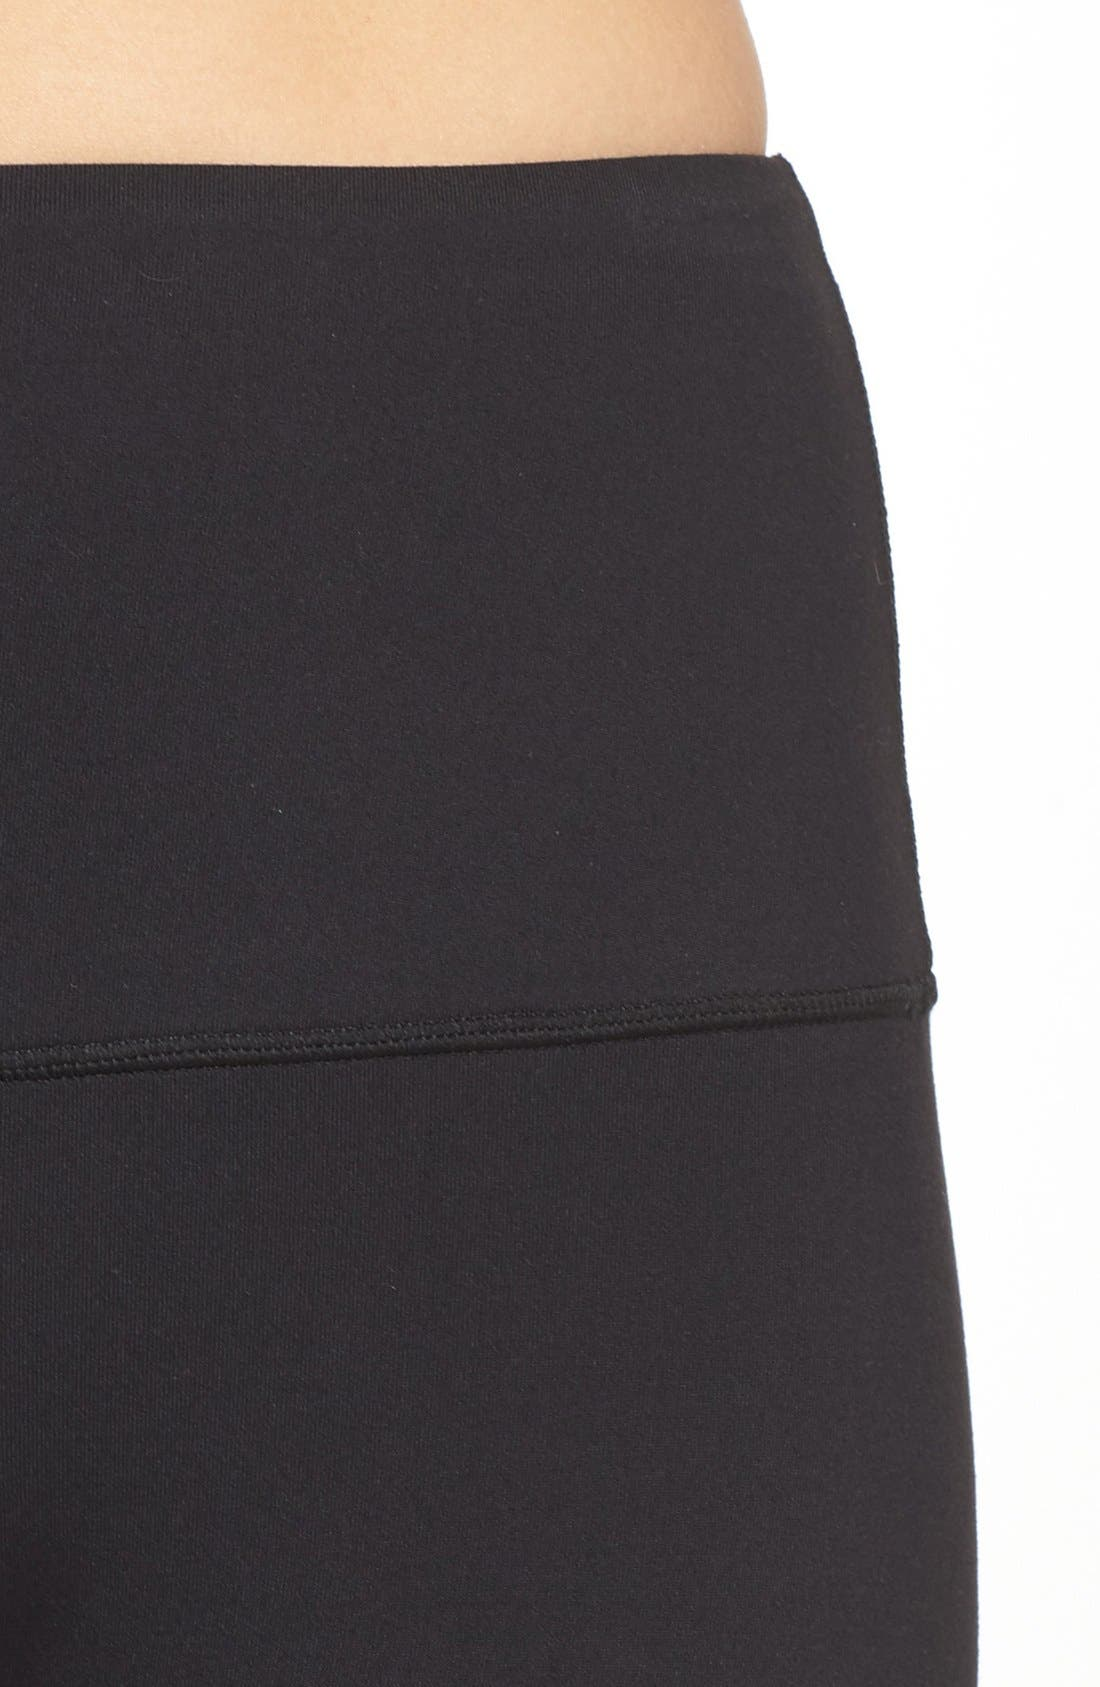 'Bardot' High Waist Leggings,                             Alternate thumbnail 3, color,                             001